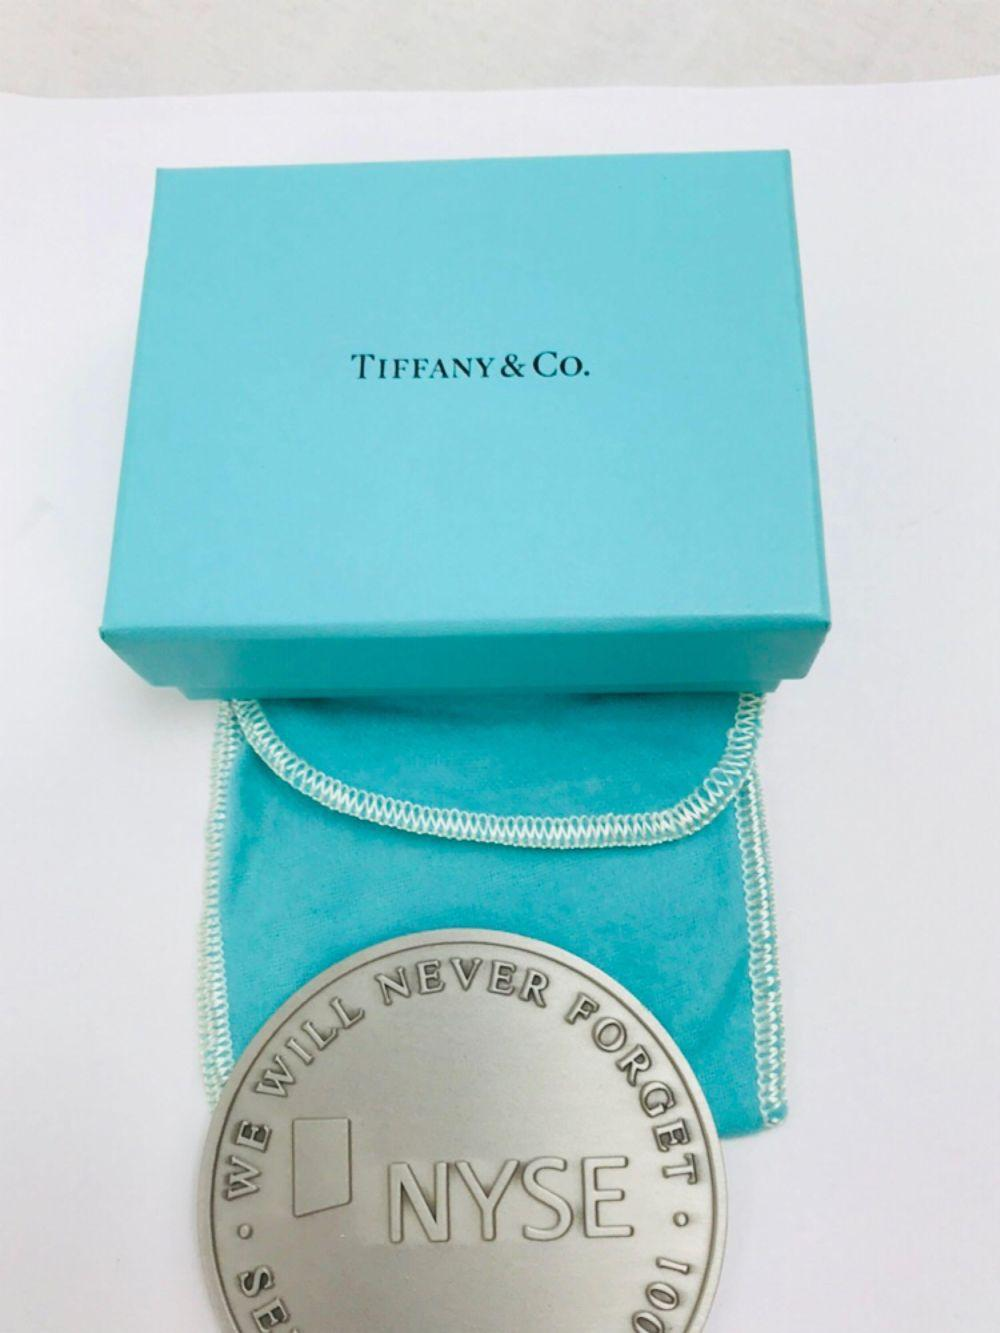 Lot 534: NYSE Sterling Silver Medallion Tiffany and Co. 9/11